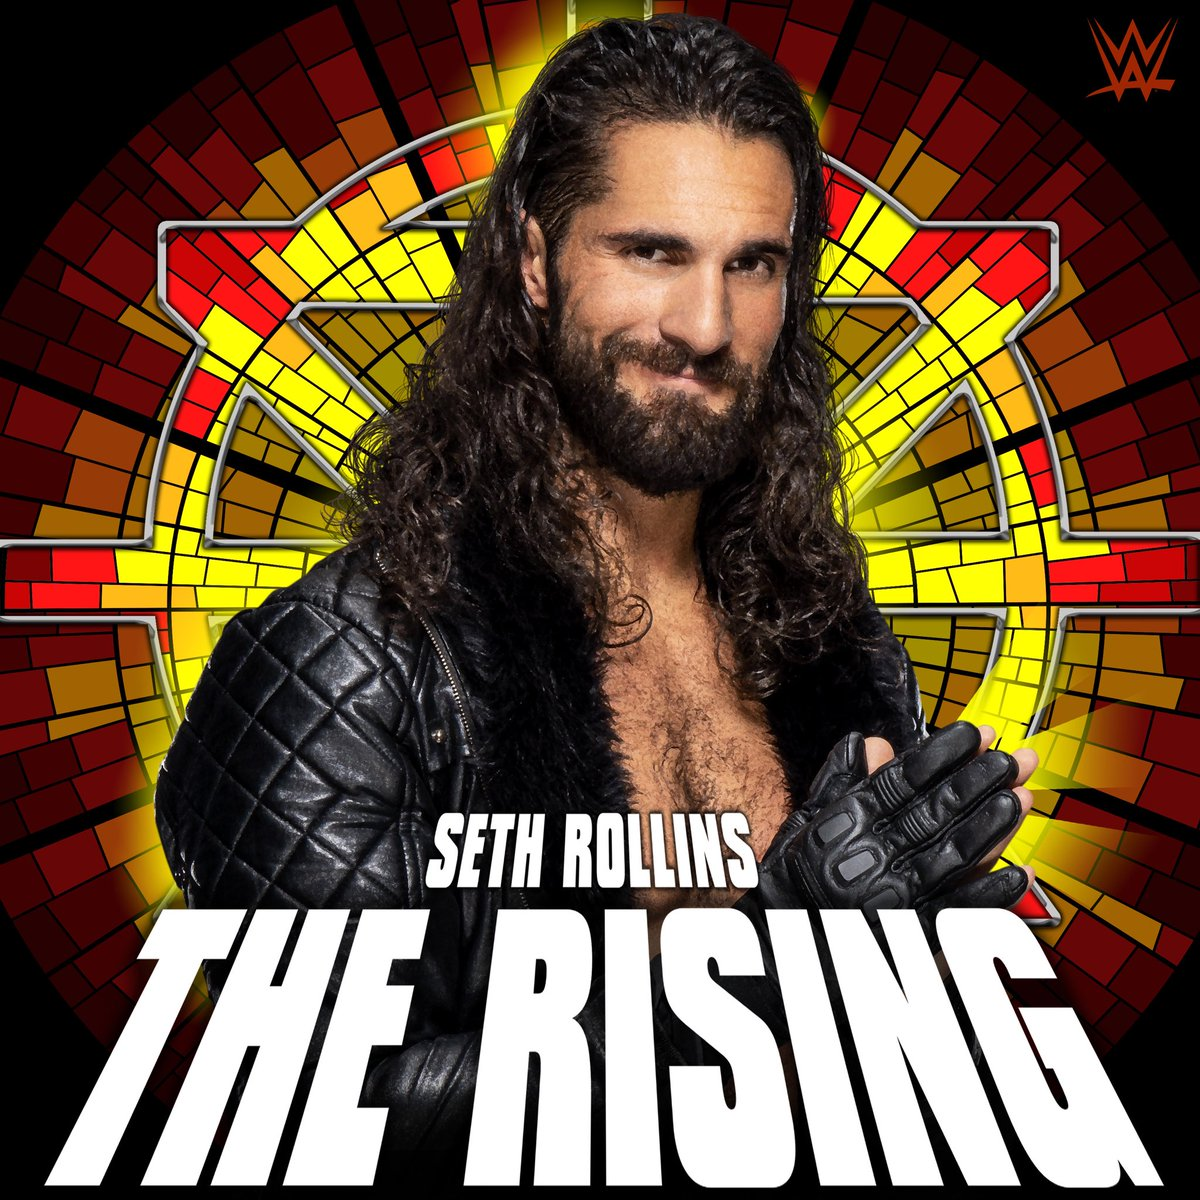 "The Monday Night Messiah has arrived to your headphones! My entrance theme ""The Rising"" is available now on @Spotify and @AppleMusic! #NewMusicFriday https://t.co/nYlfwgxlpr"